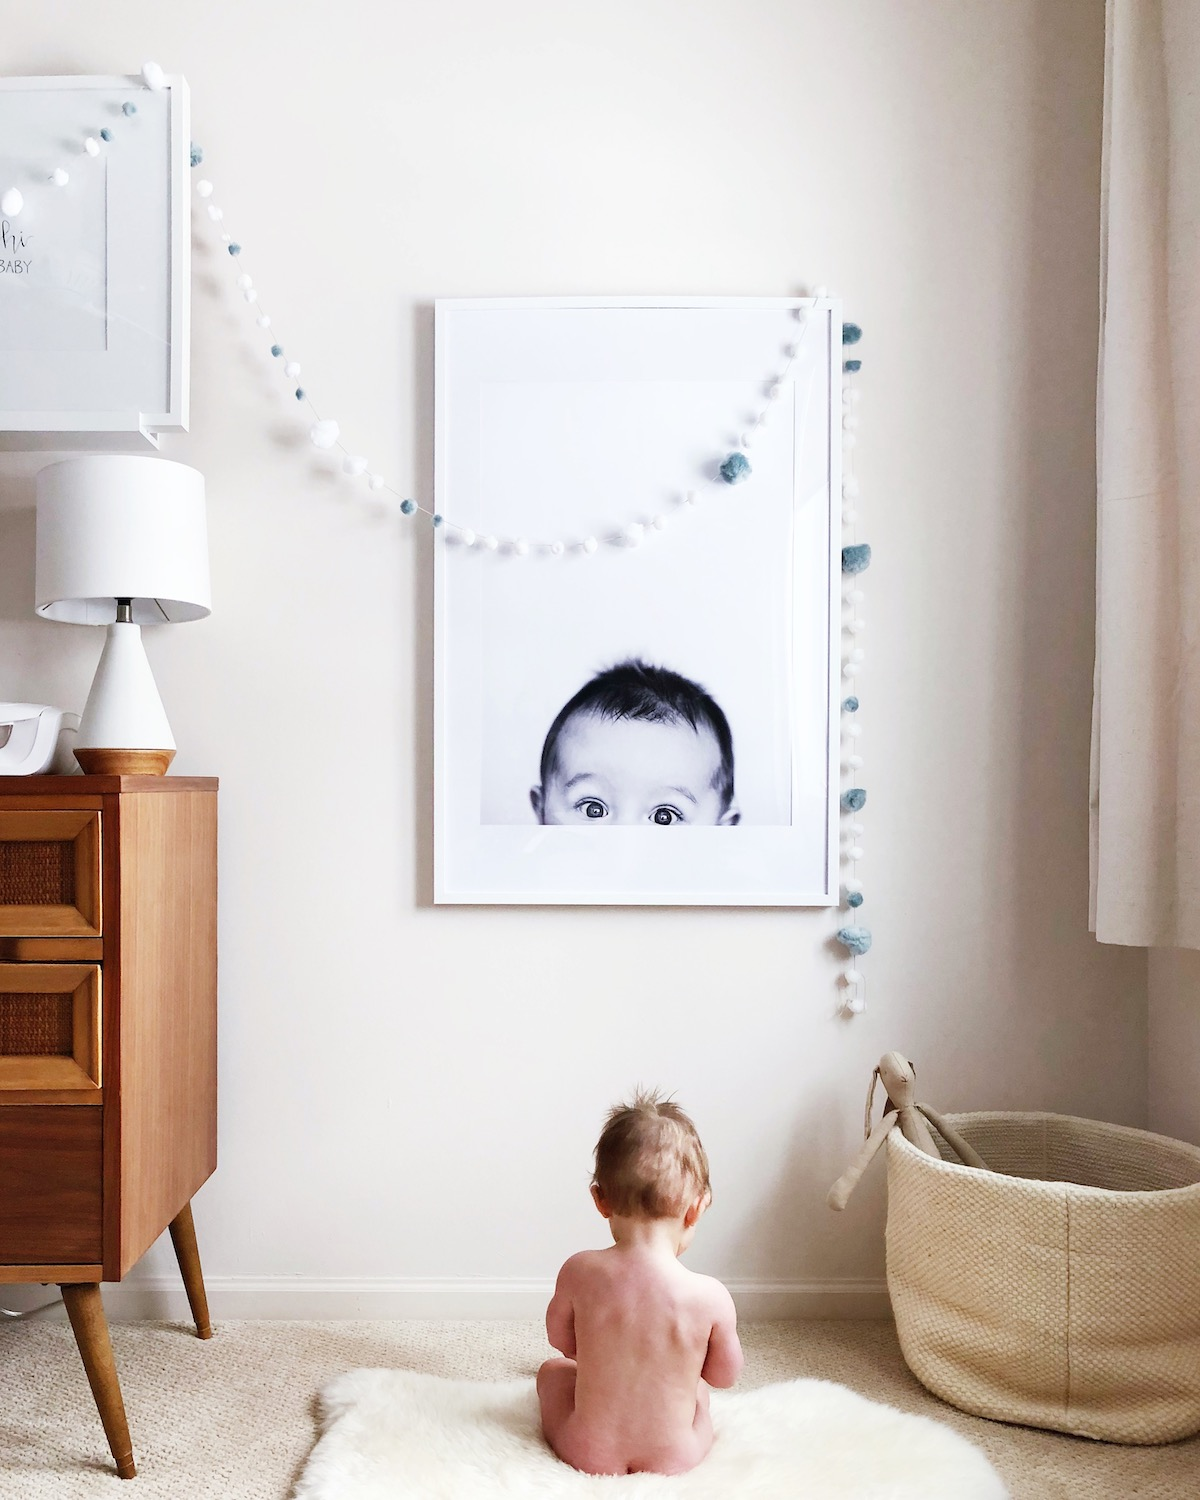 Baby sitting in front of large format print of its own portrait